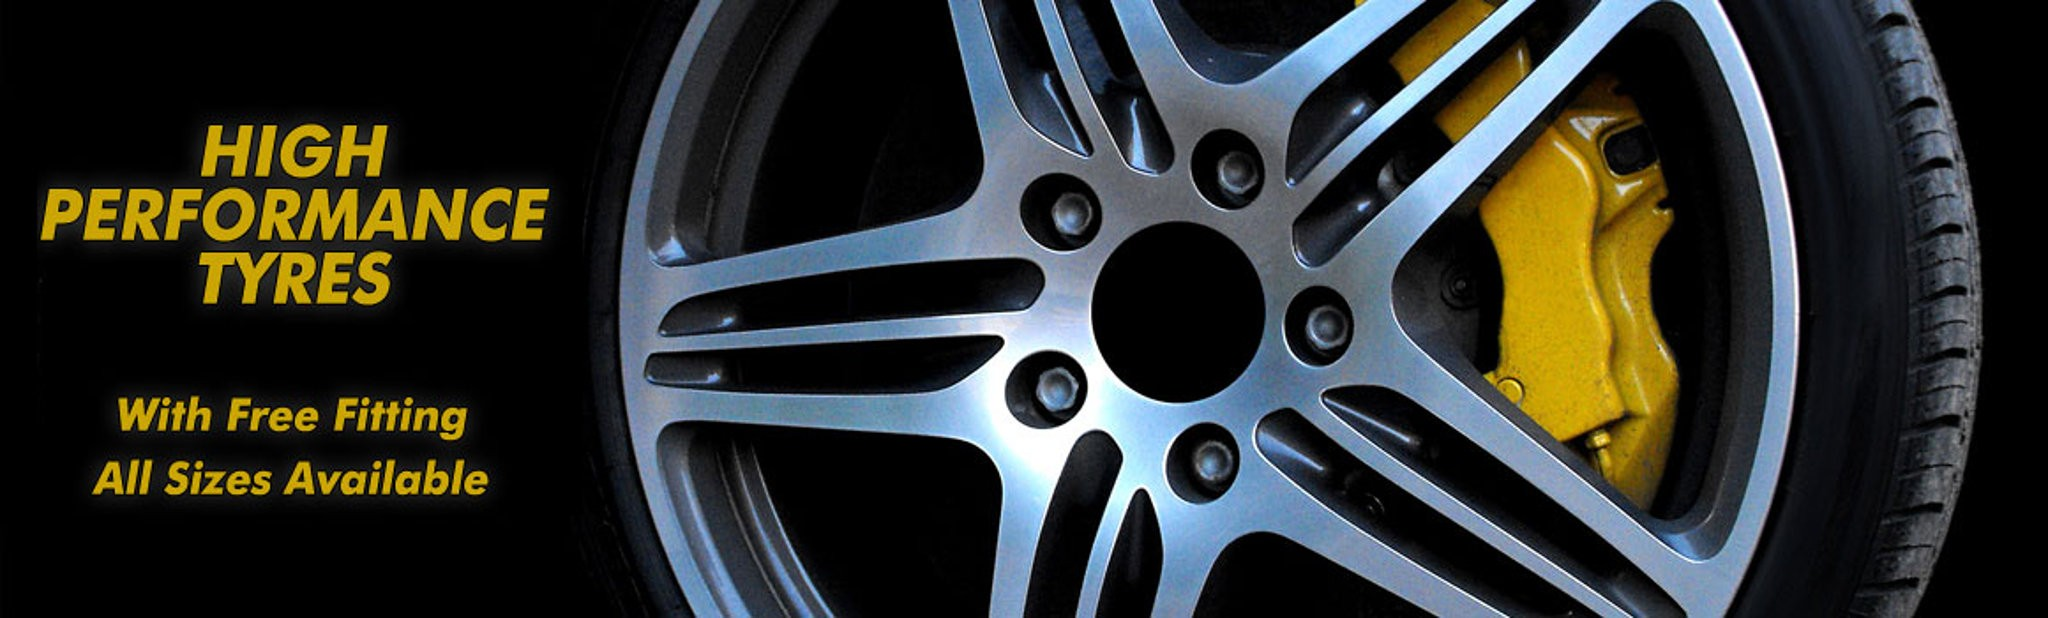 Car Tyre Safety York Tyre Sales